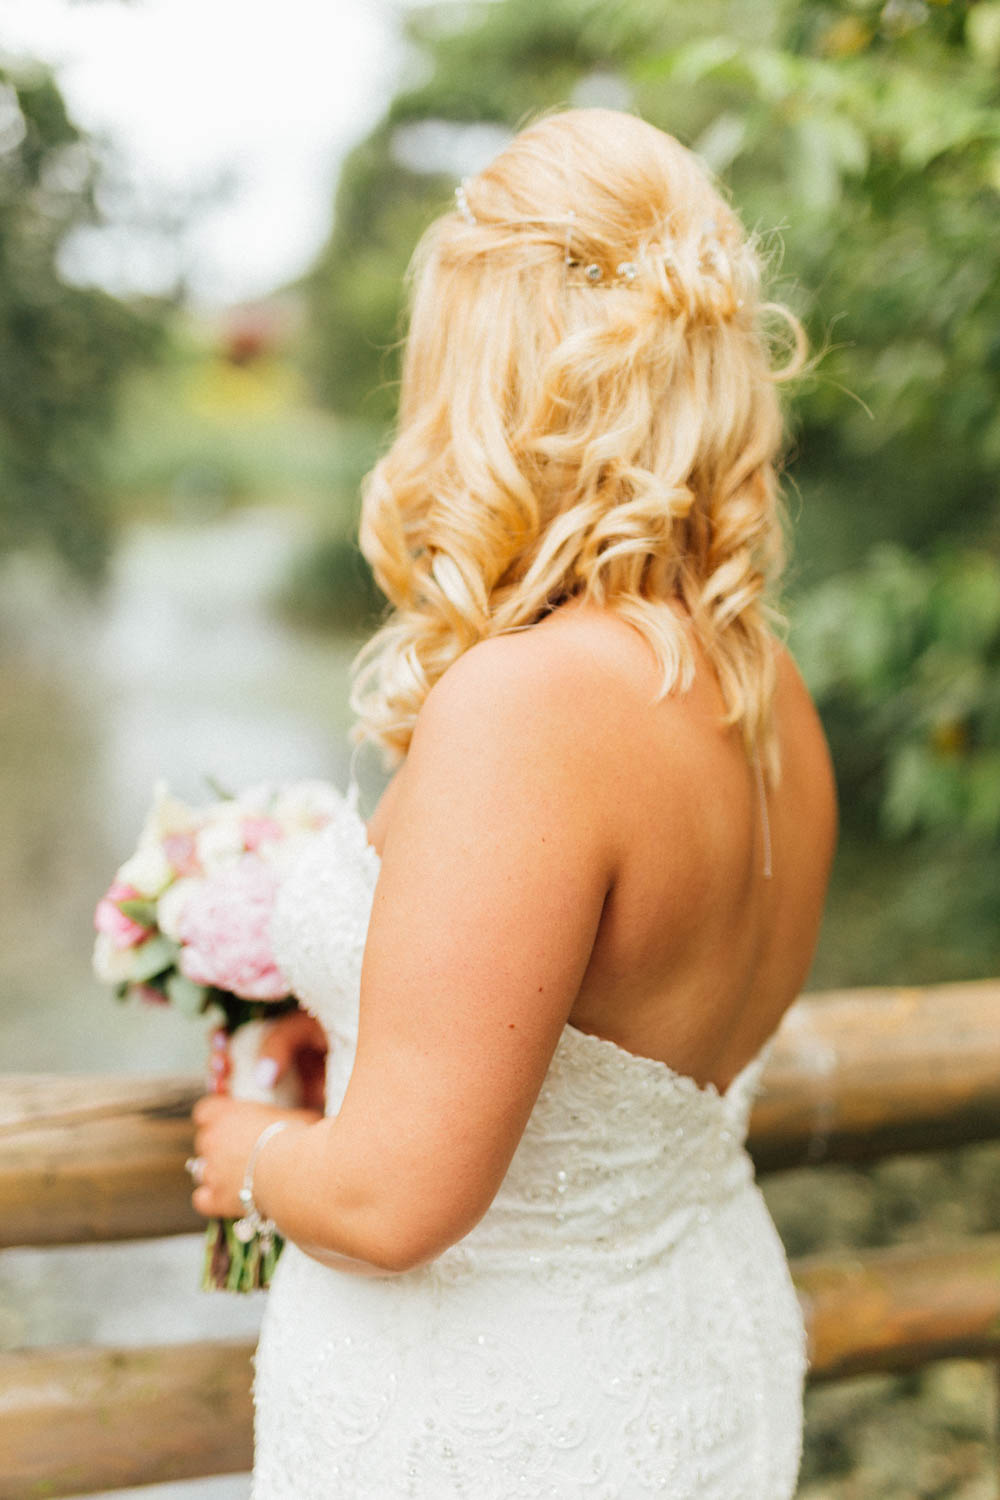 Special-Day-Photography-Manor-By-The-Lake-Cheltenham-Cheltenham-Manor-Wedding-bridal-hair-details.jpg